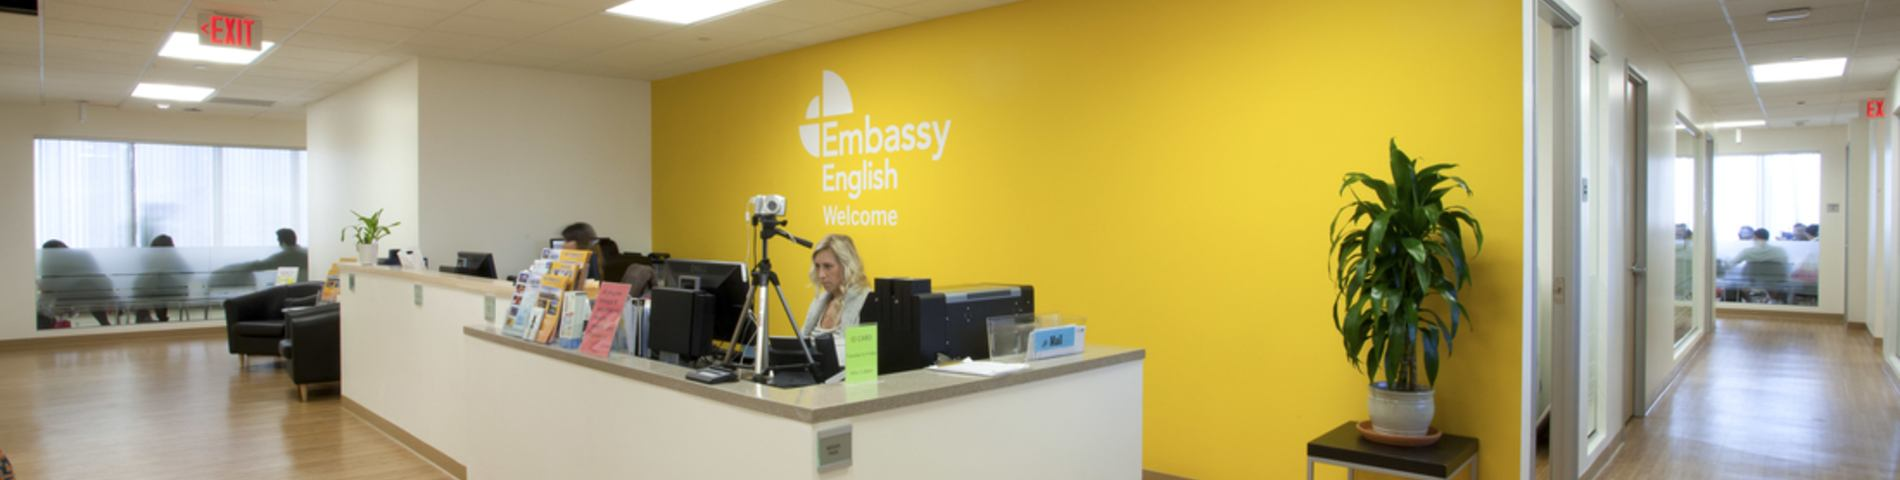 Embassy English kép 1